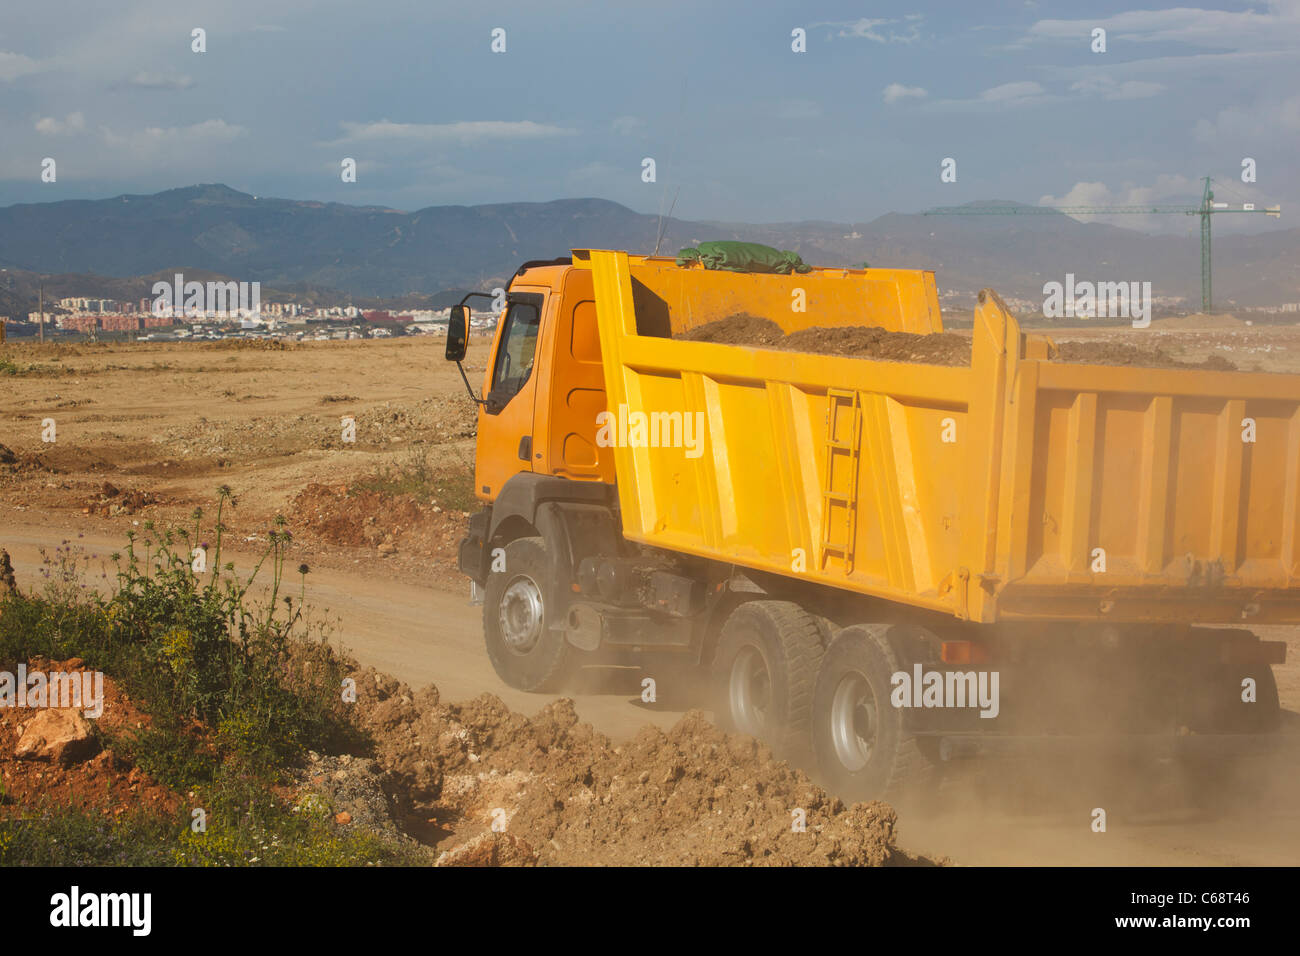 Dump truck laden with earth driving on construction site. - Stock Image